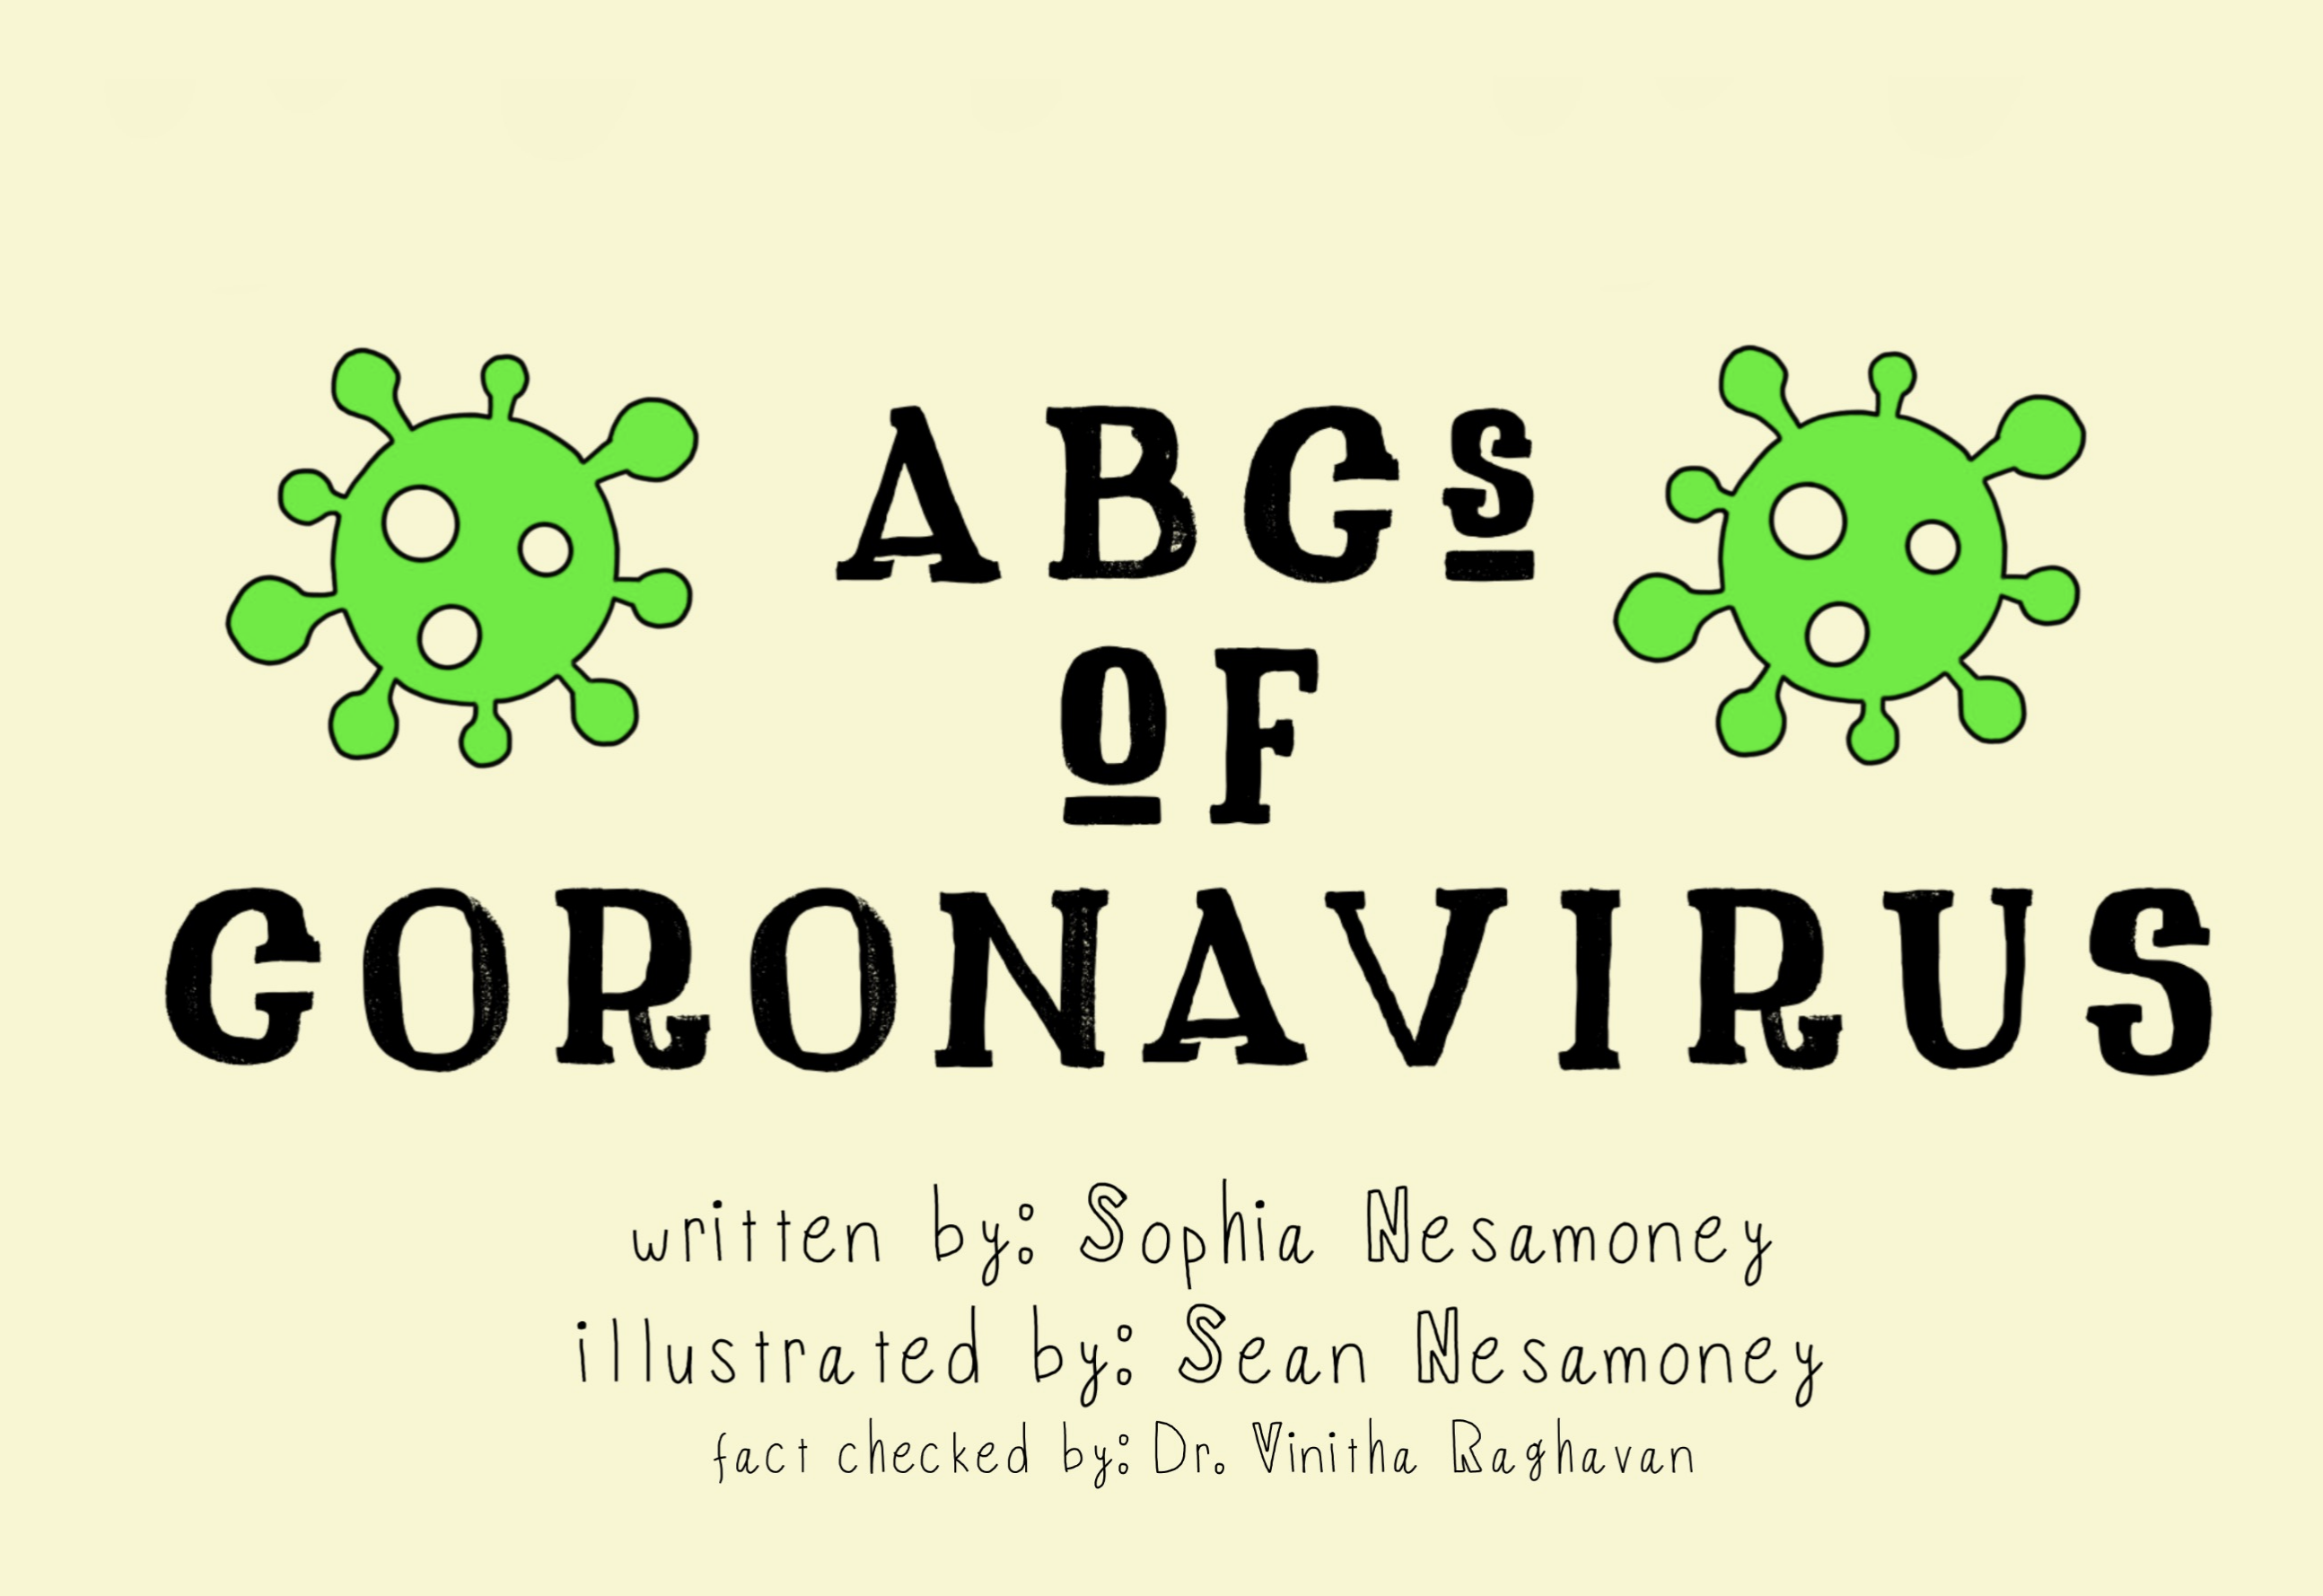 The ABCs of Coronavirus